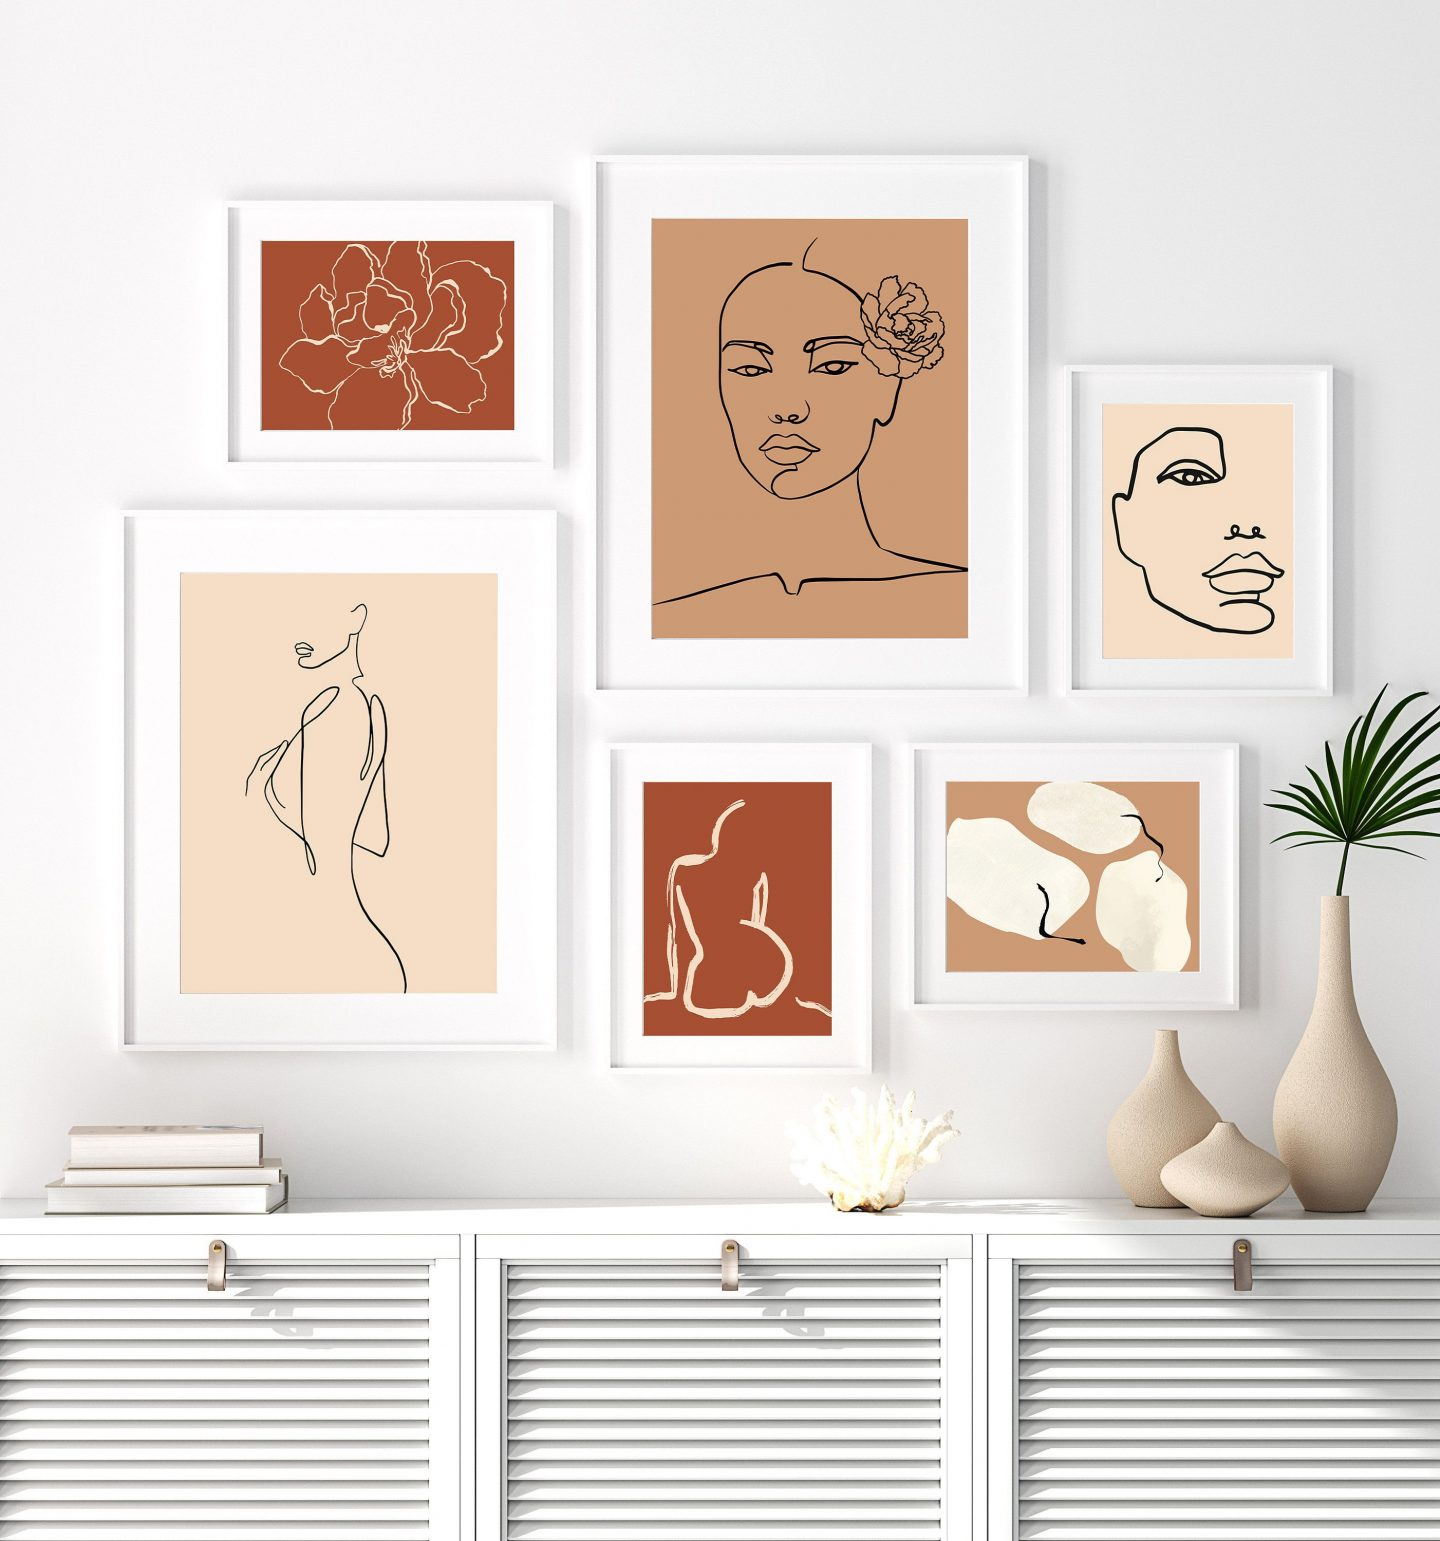 Bohemian wall decor art set with female figures in nude and brown tones